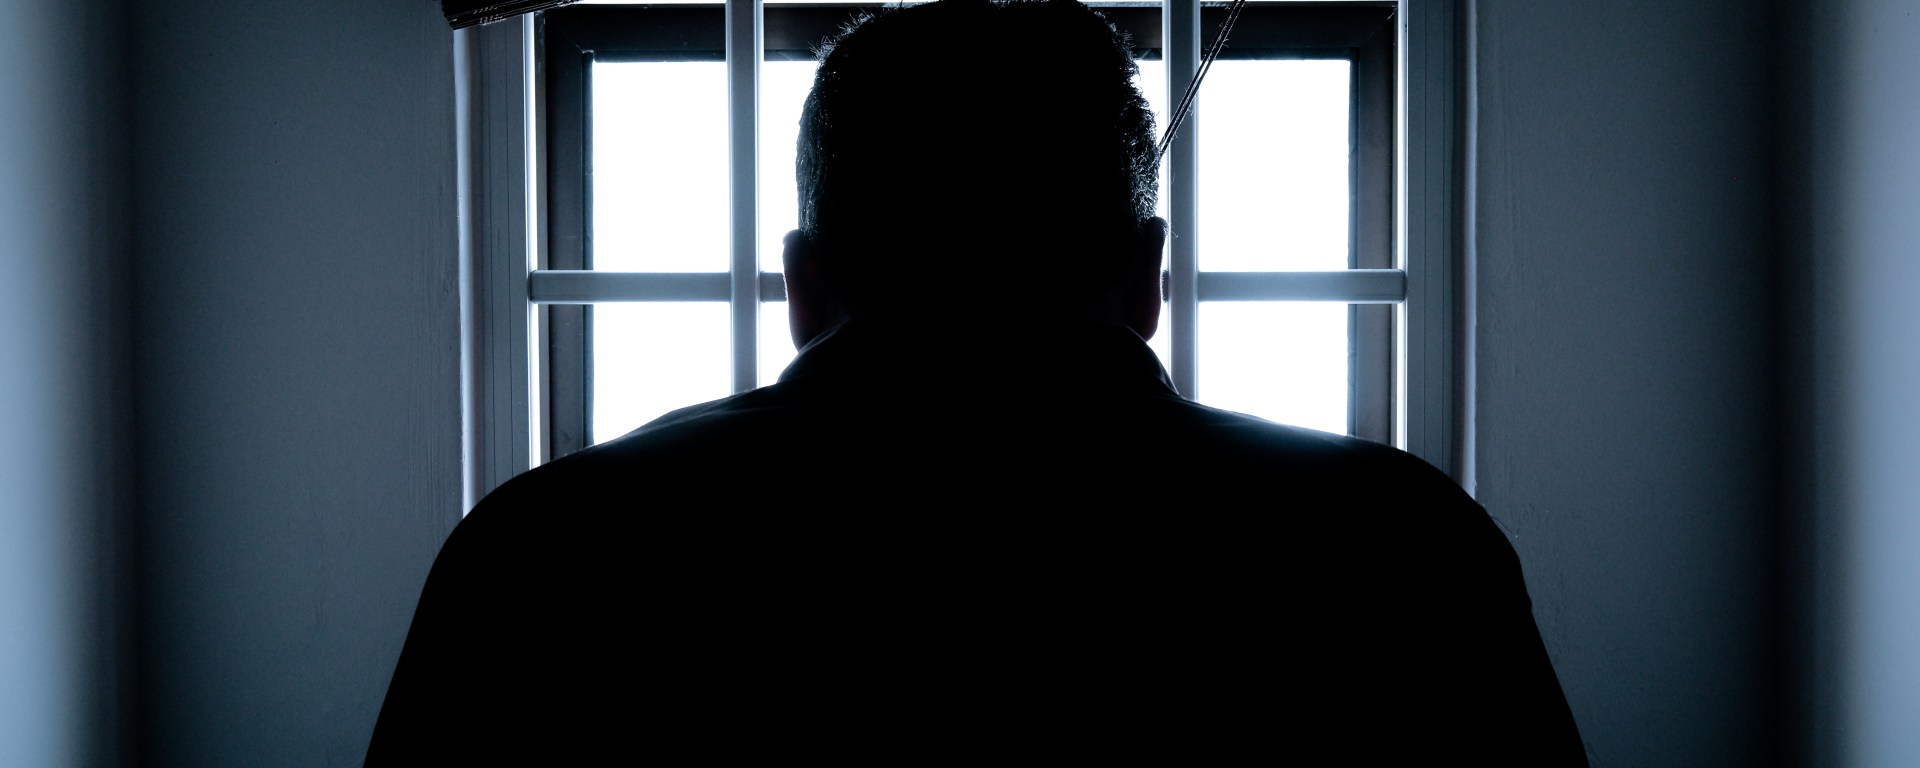 Silhouette of a man standing in front of a window.